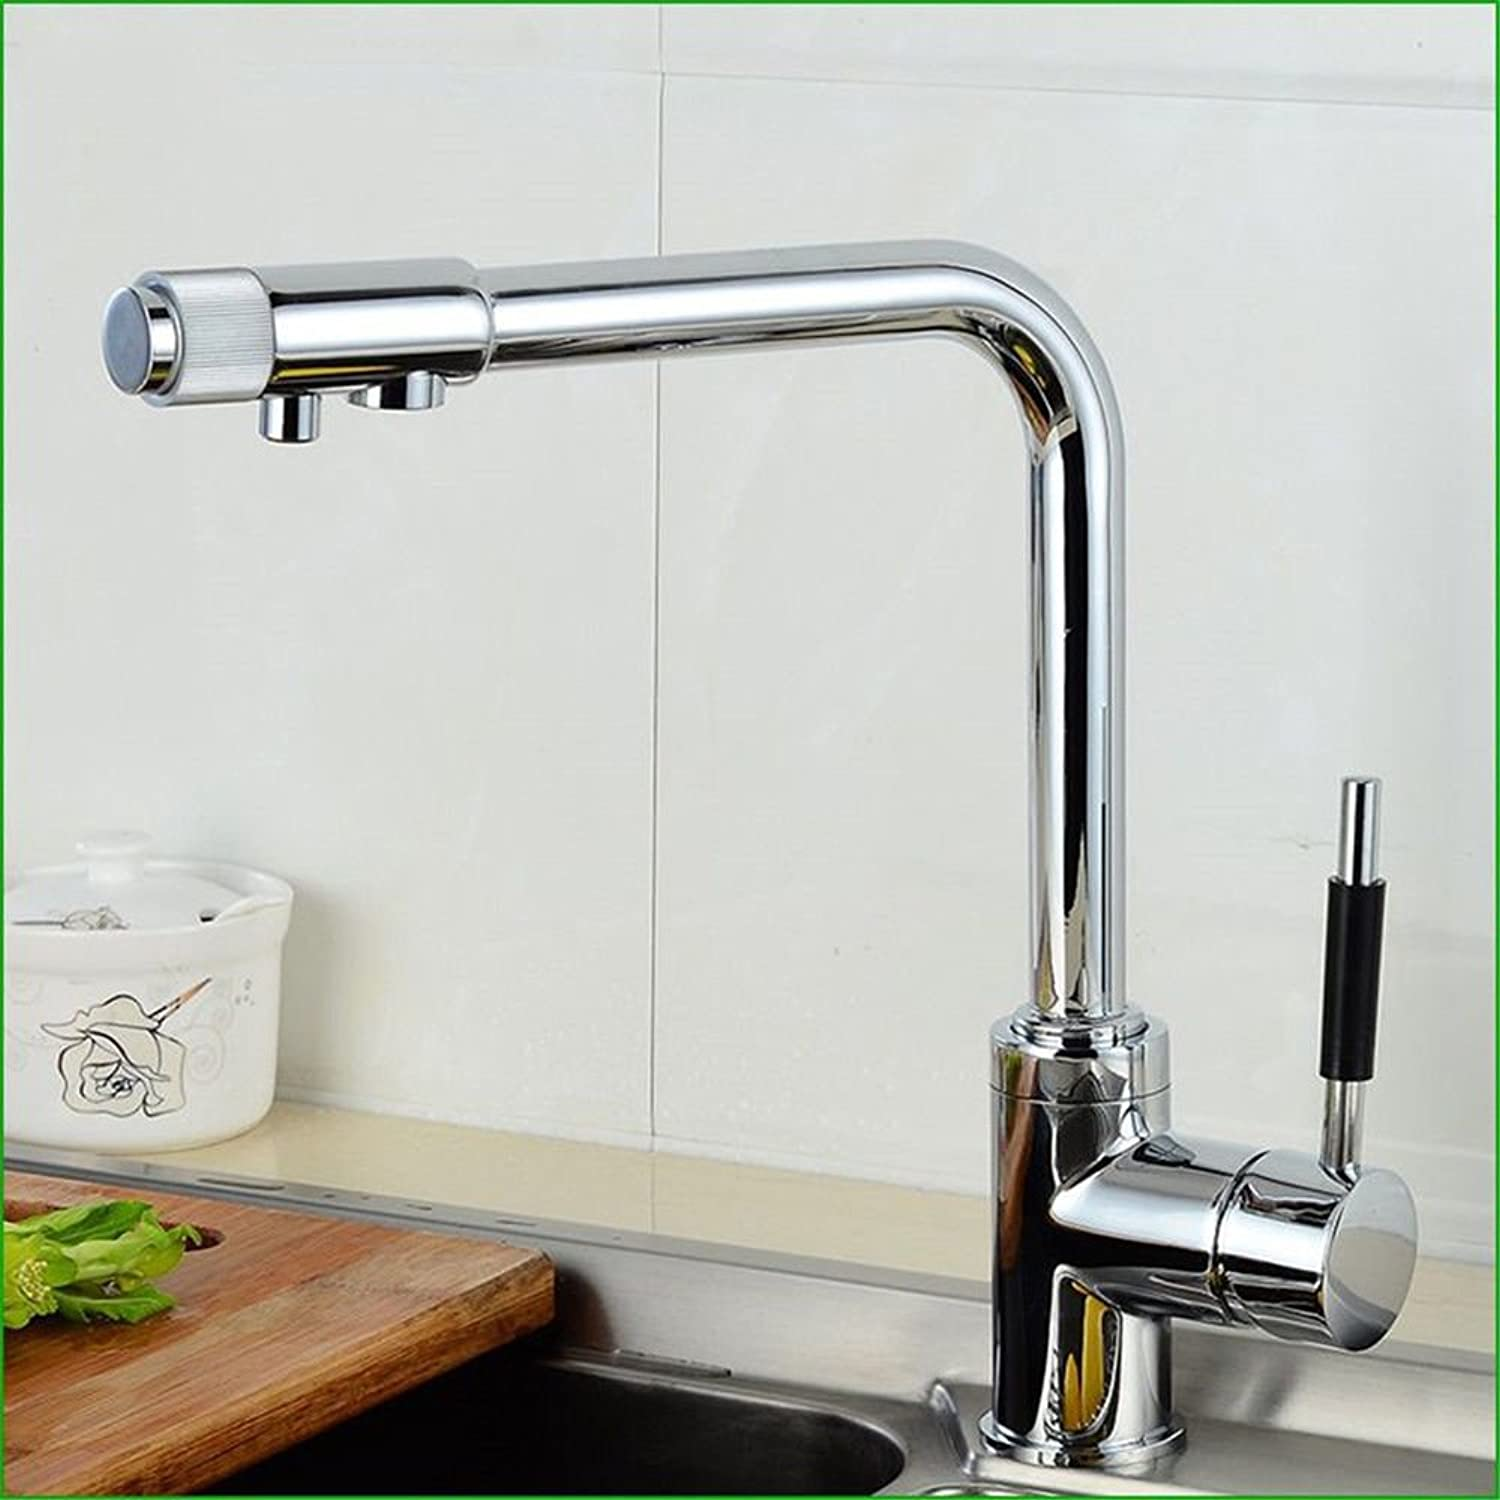 Hlluya Professional Sink Mixer Tap Kitchen Faucet The Brass chrome two with double water square barrel sink kitchen sink KITCHEN FAUCET